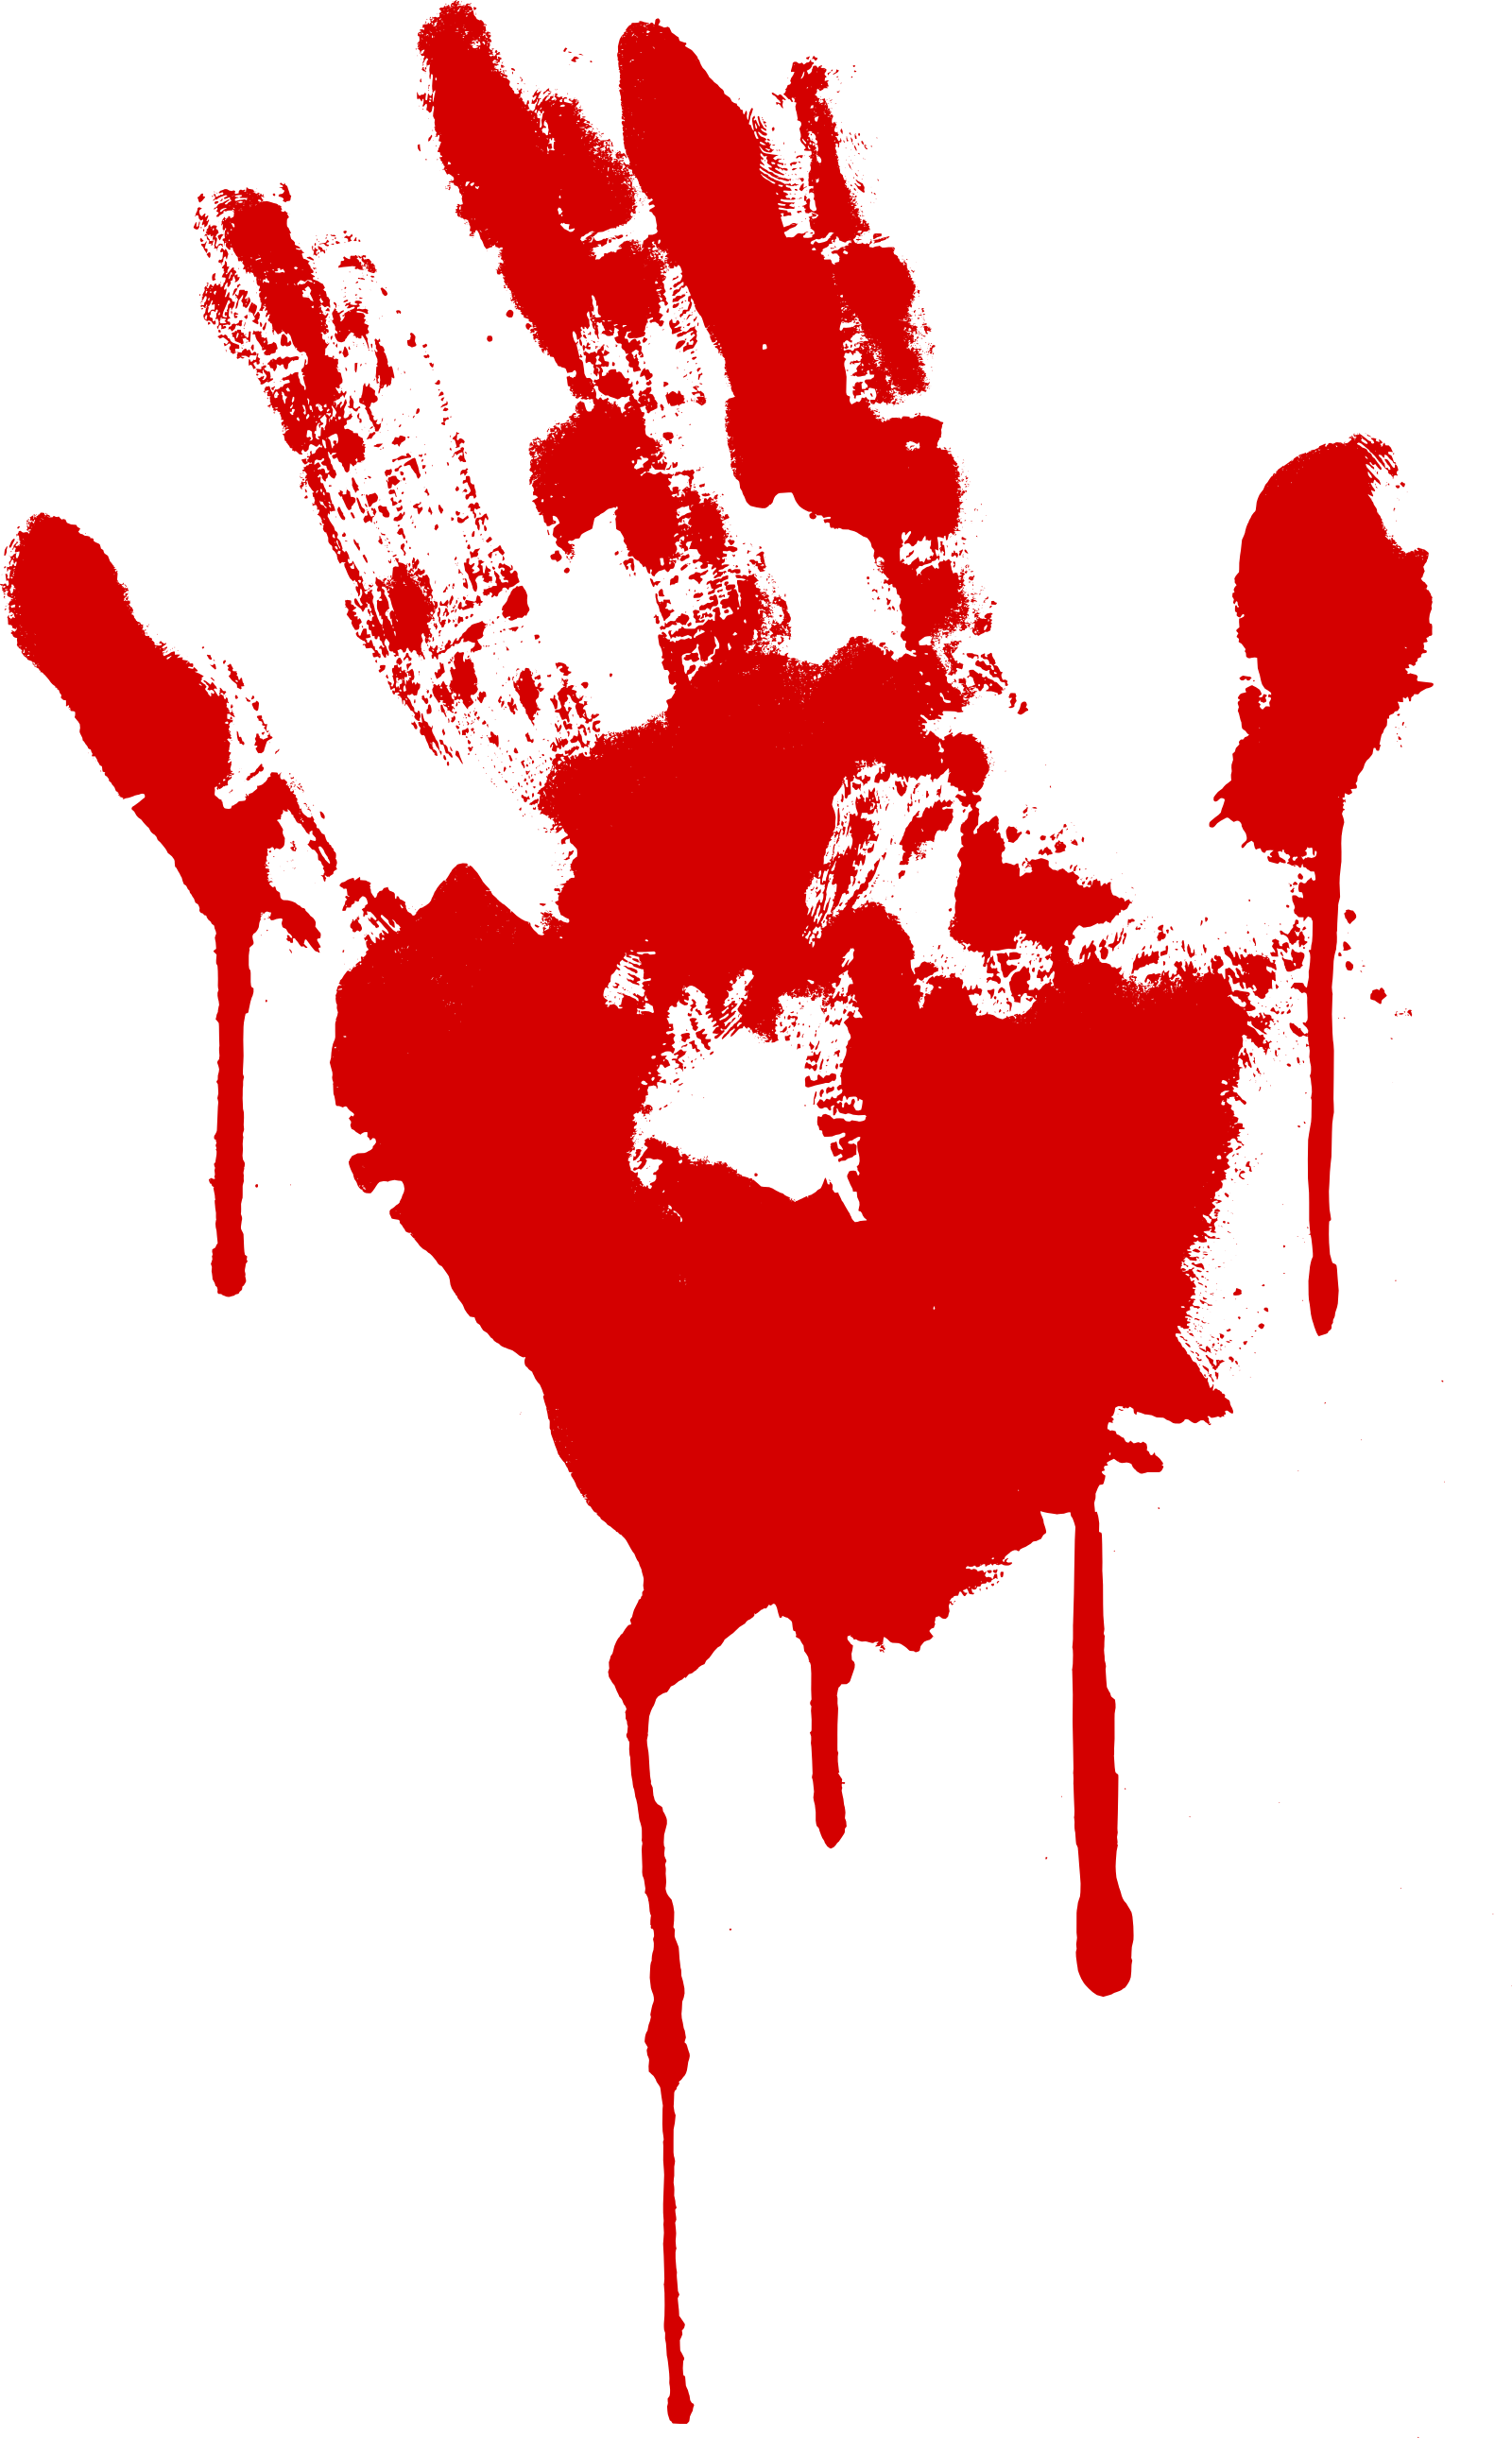 Png transparent background. Bloody hand print with